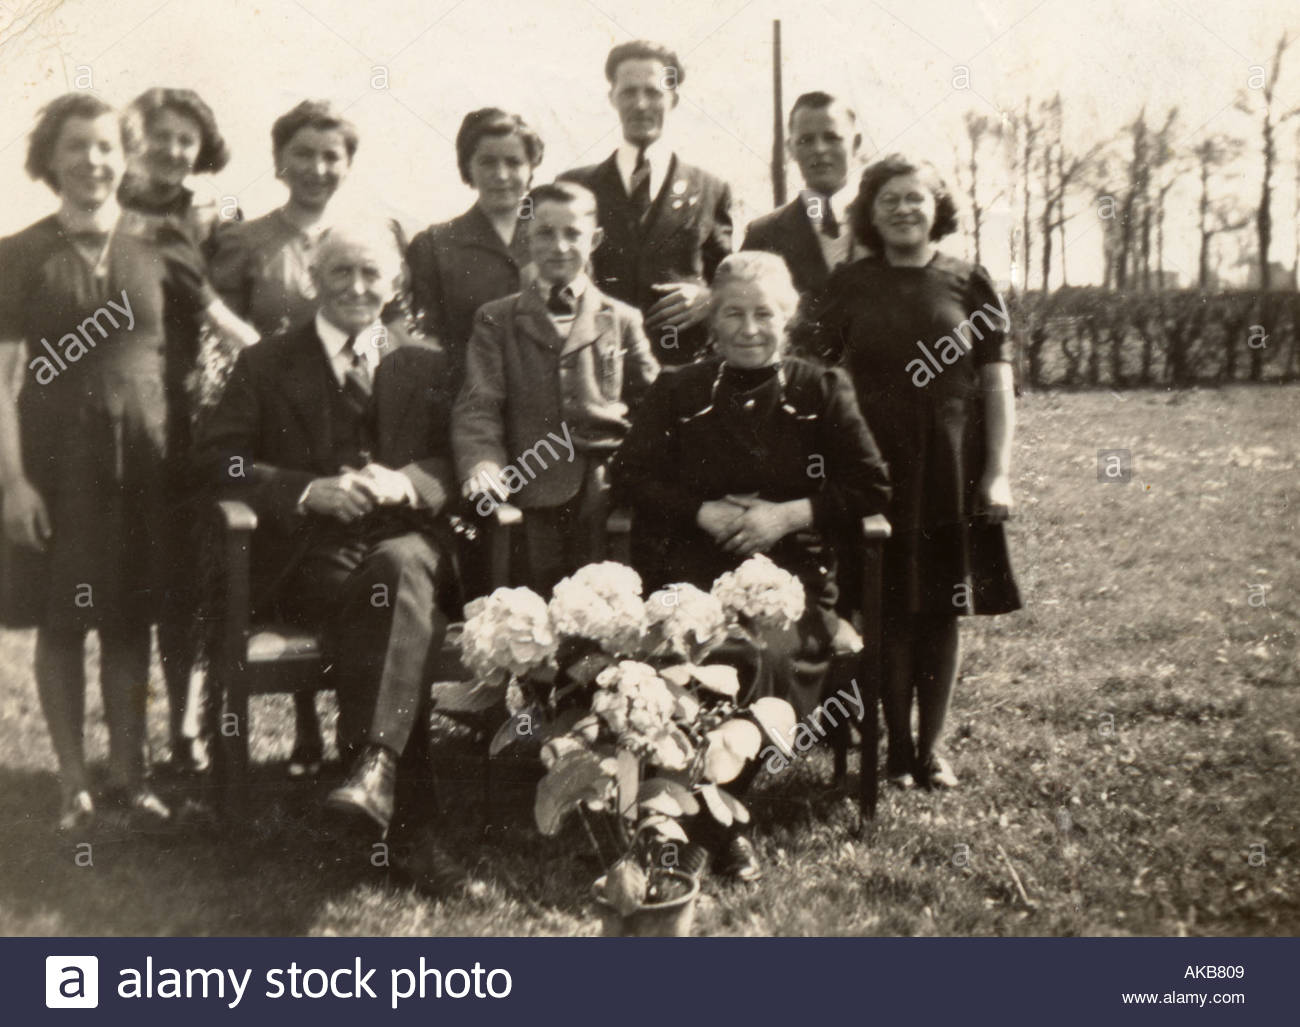 Vintage family group photo golden marriage Holland 1930s - Stock Image